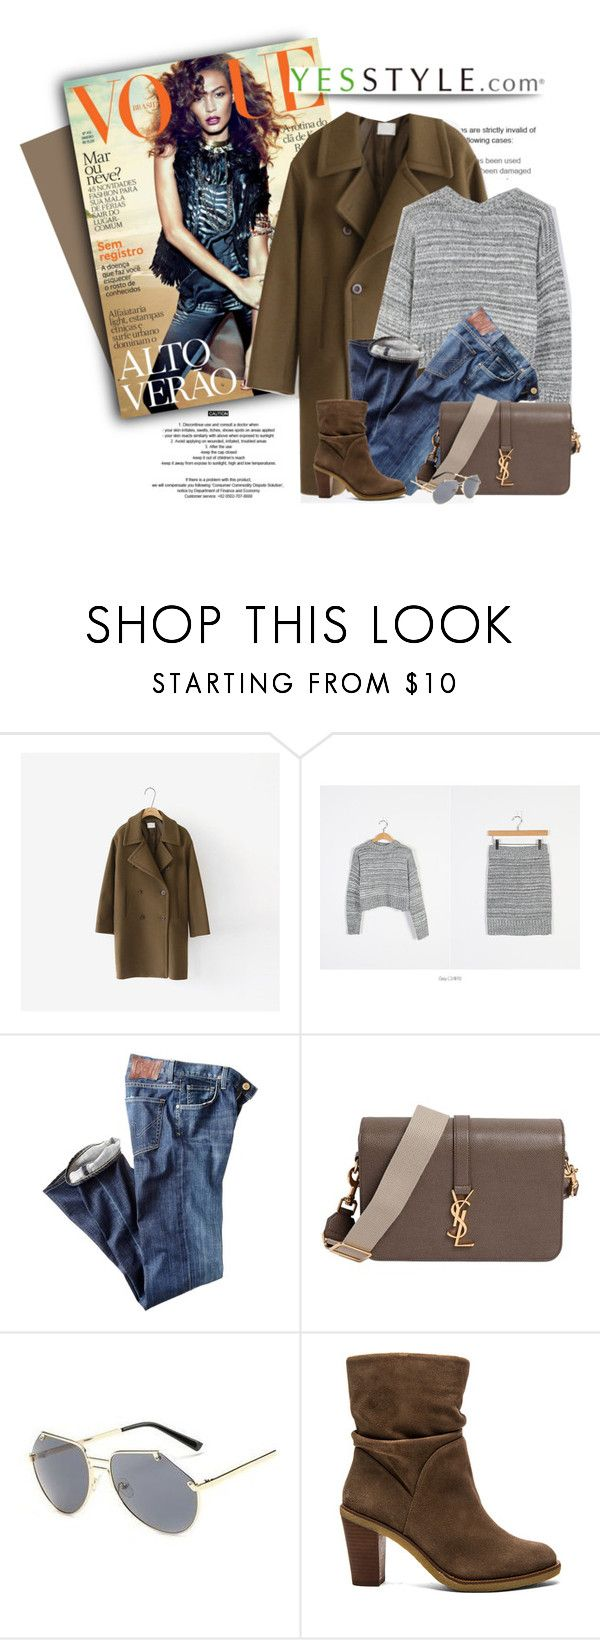 """""""YESSTYLE.com"""" by monmondefou ❤ liked on Polyvore featuring Cherrykoko, Citizens of Humanity, Yves Saint Laurent, KOON, Vince Camuto and yesstyle"""